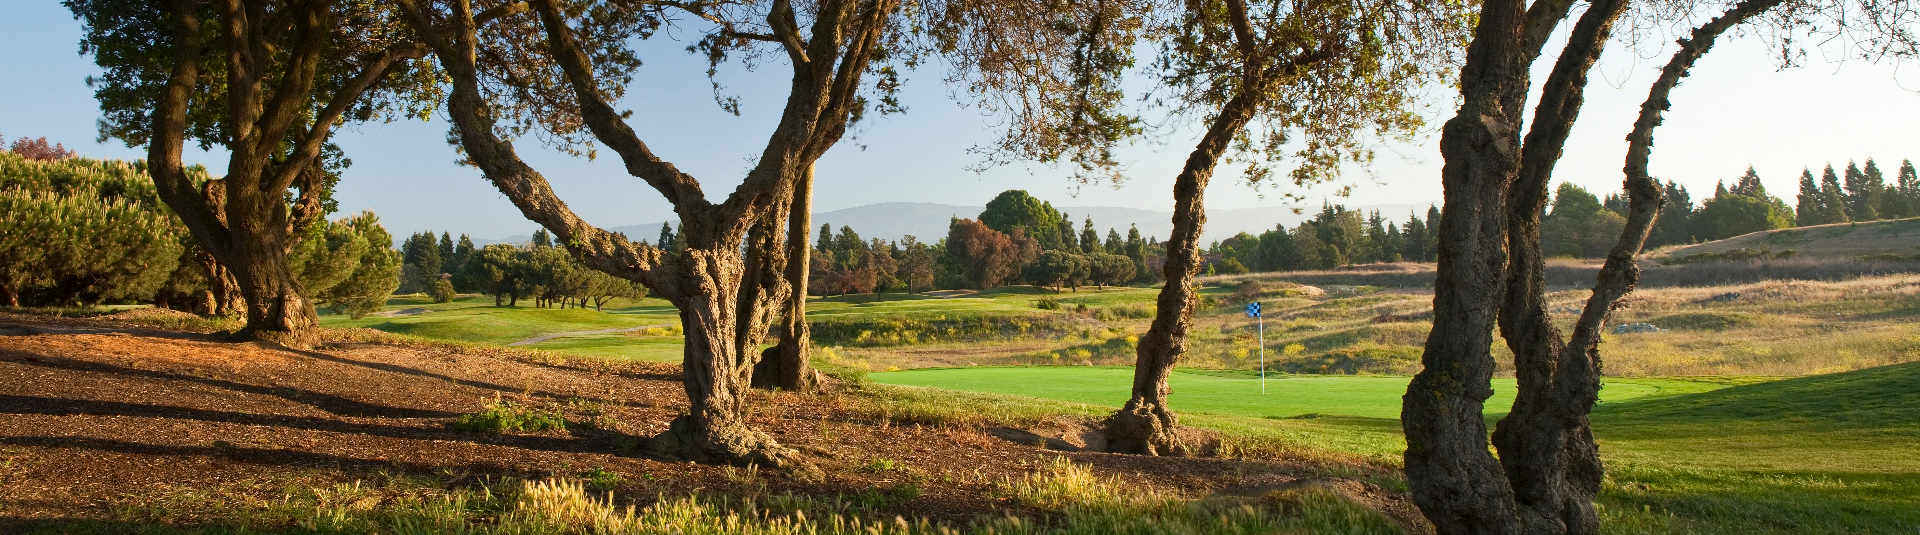 Enjoy some of the finest golf scenery in the Silicon Valley